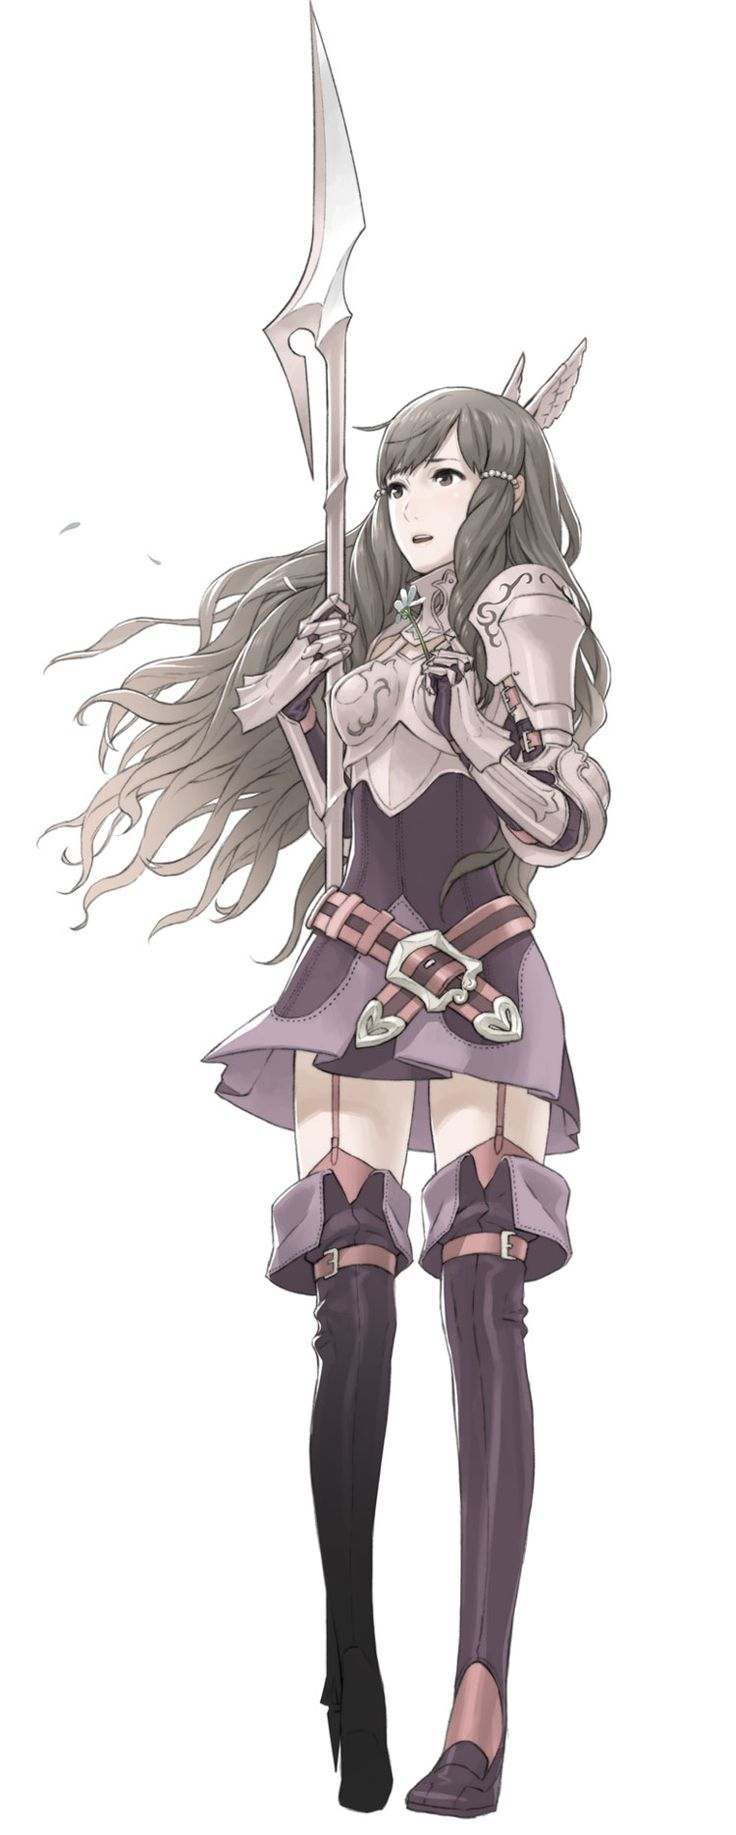 Fire Emblem: Awakening - Sumia - I'm not very far in the game yet, but she annoys the heck outta me